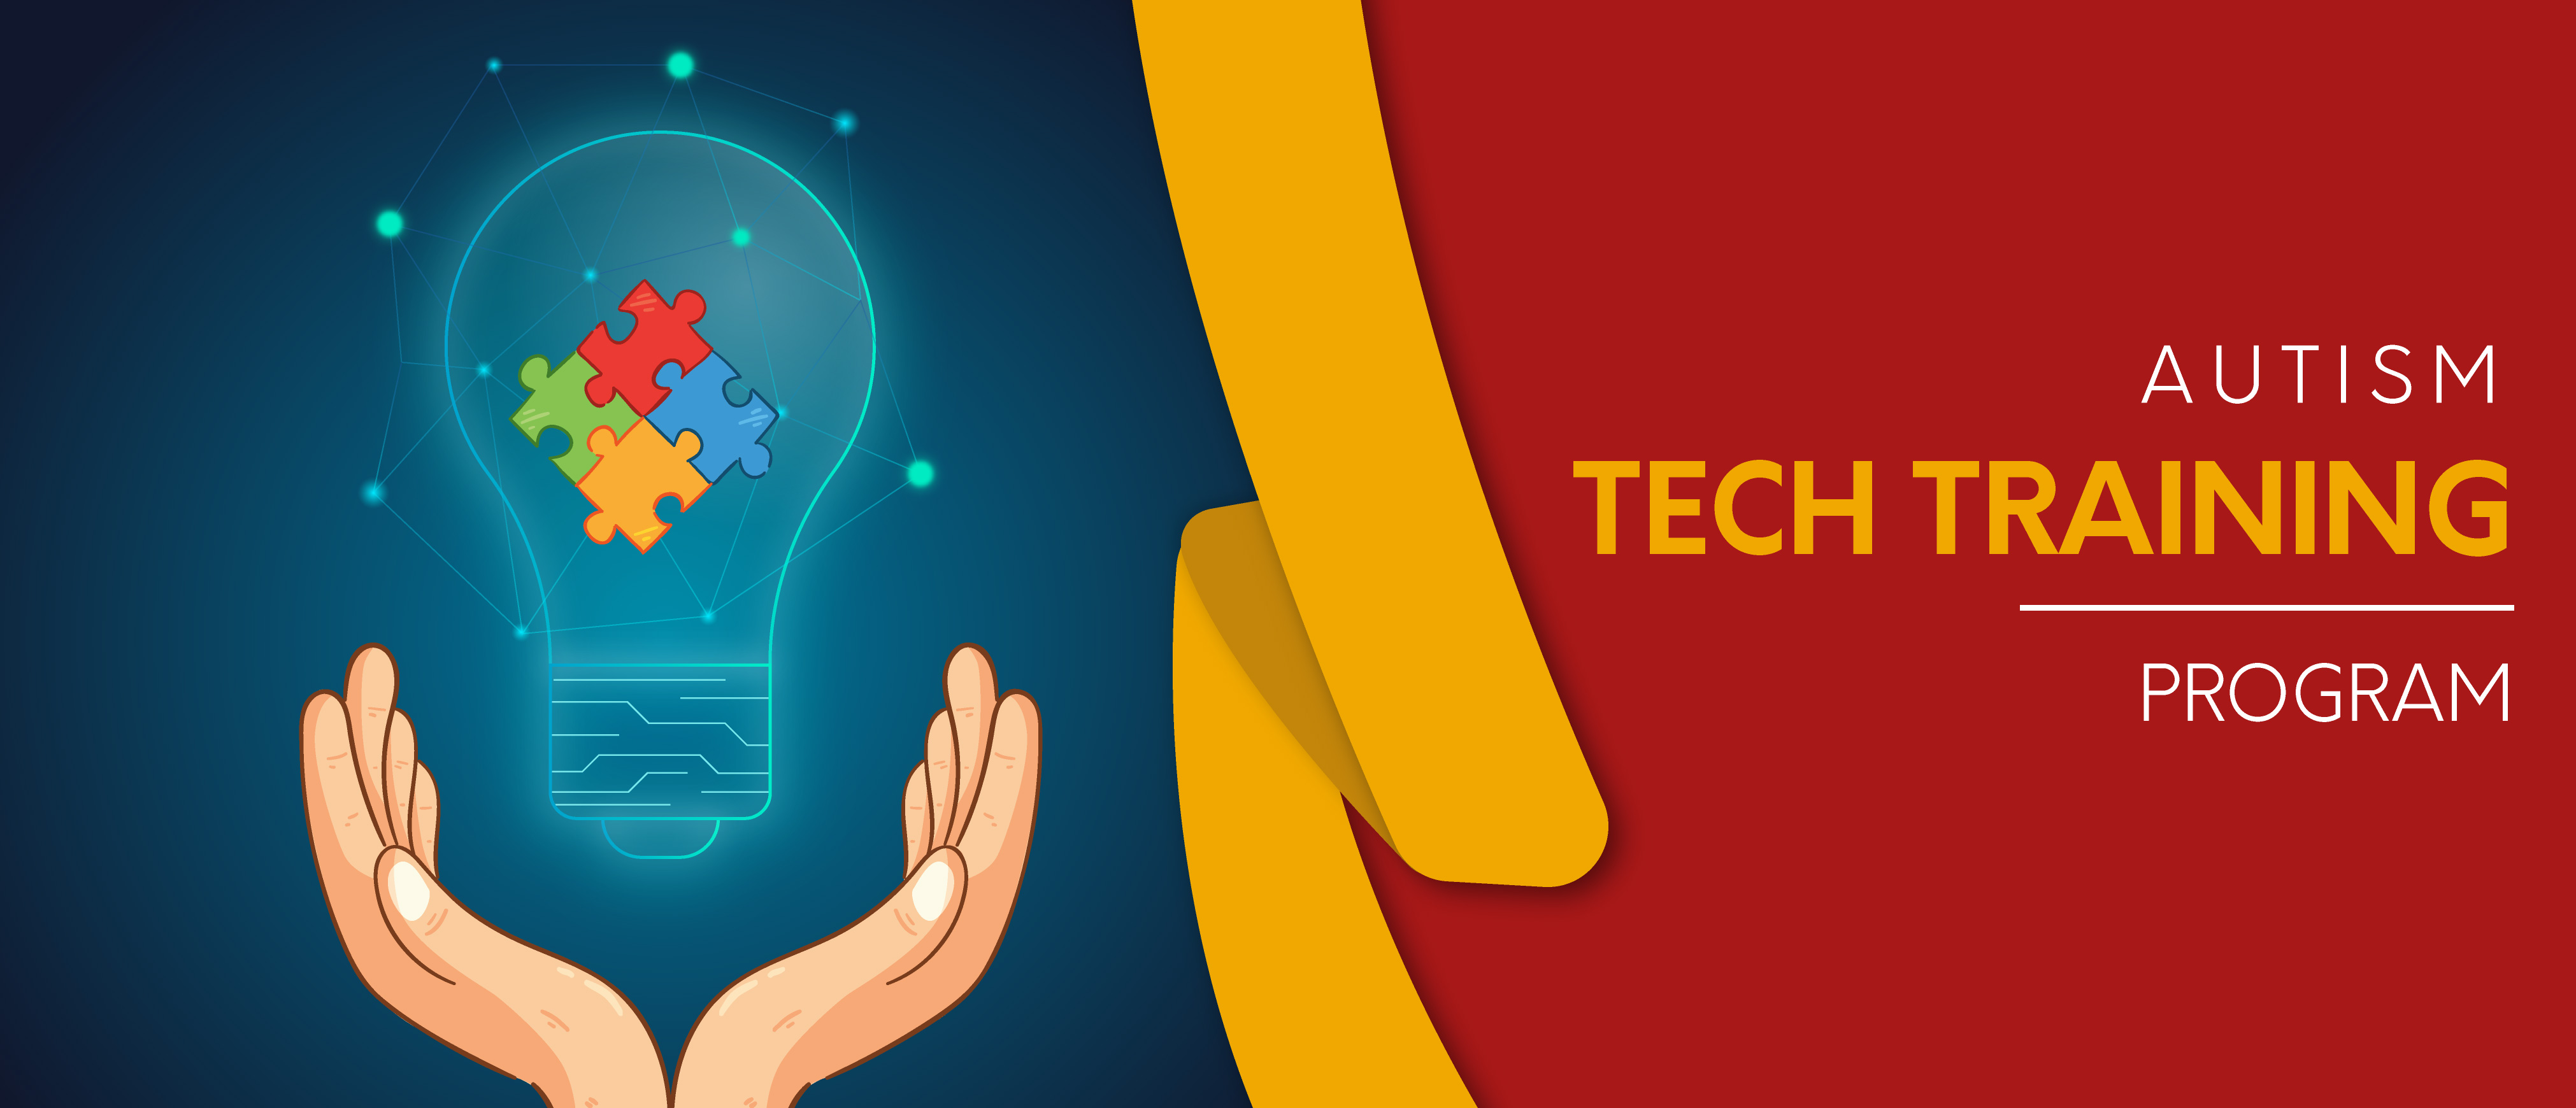 autism-tech-training-banner_v1